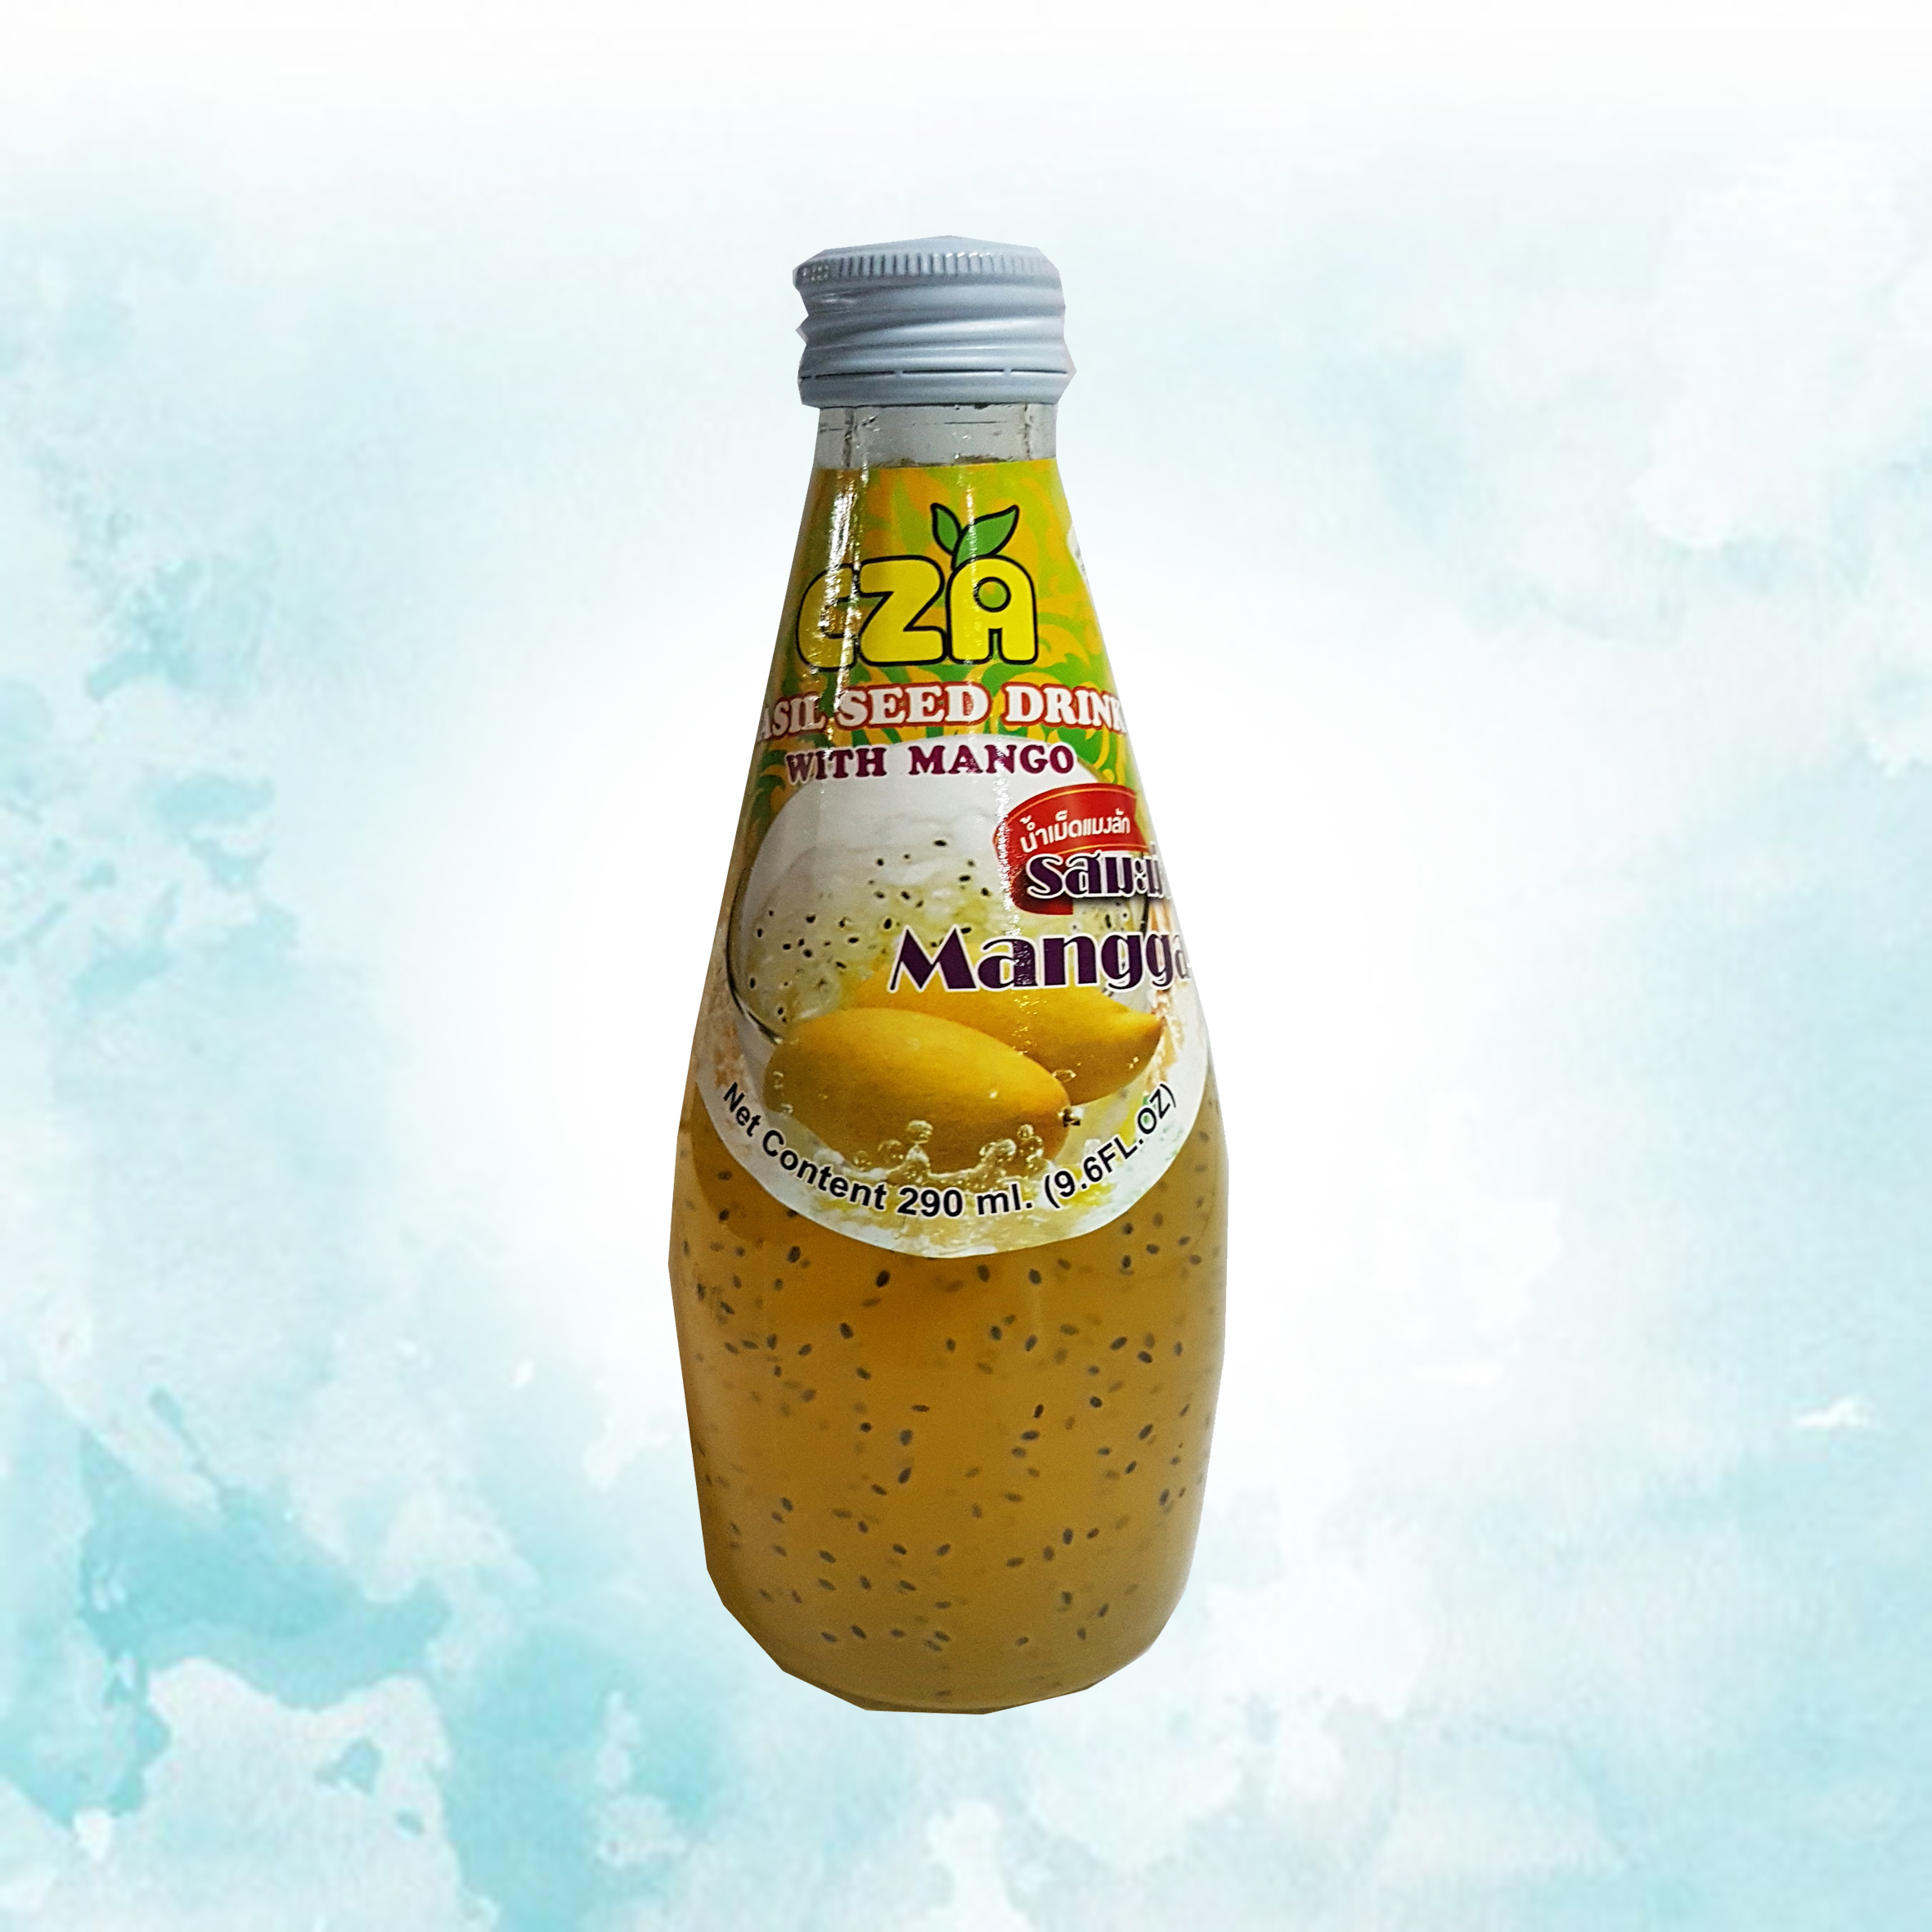 CZA Basil Seed Drink with Mango BG.jpg